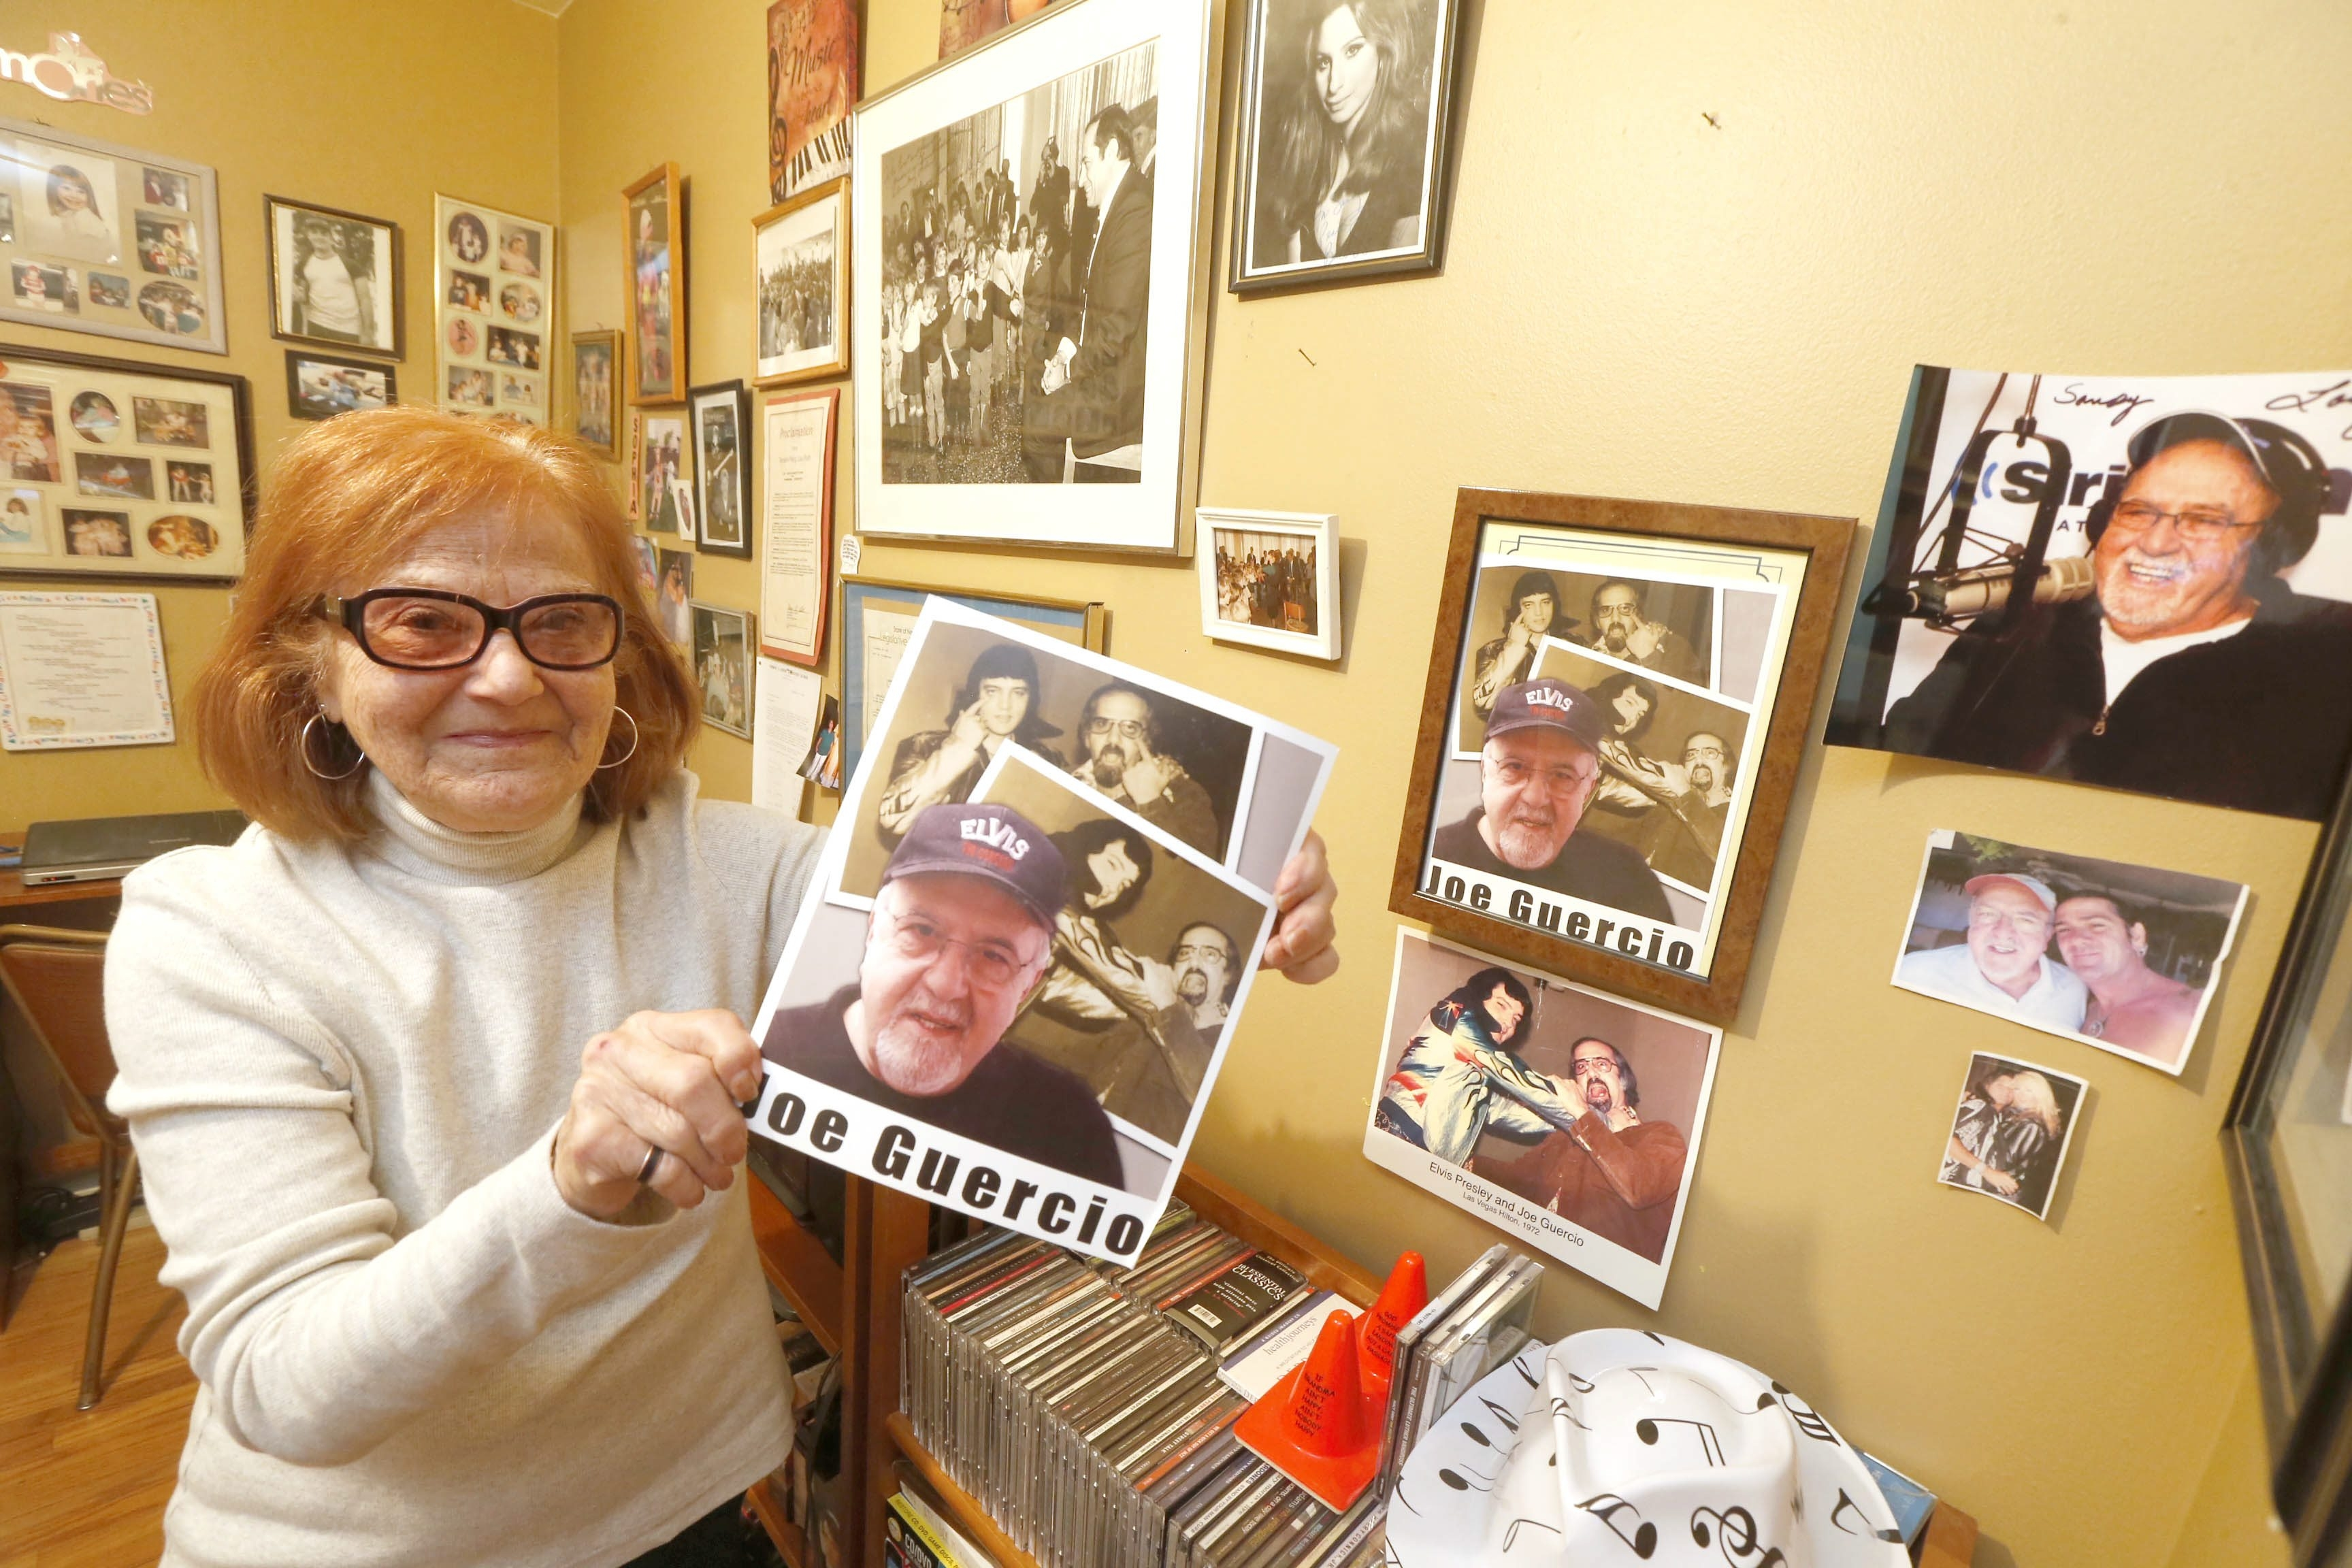 Sandy Gerace holds a photo of her brother Joe Guercio, who was Elvis Presley's musical director for years.  This at her home in Tonawanda on Friday, Jan. 9, 2015.  (Robert Kirkham/Buffalo News)